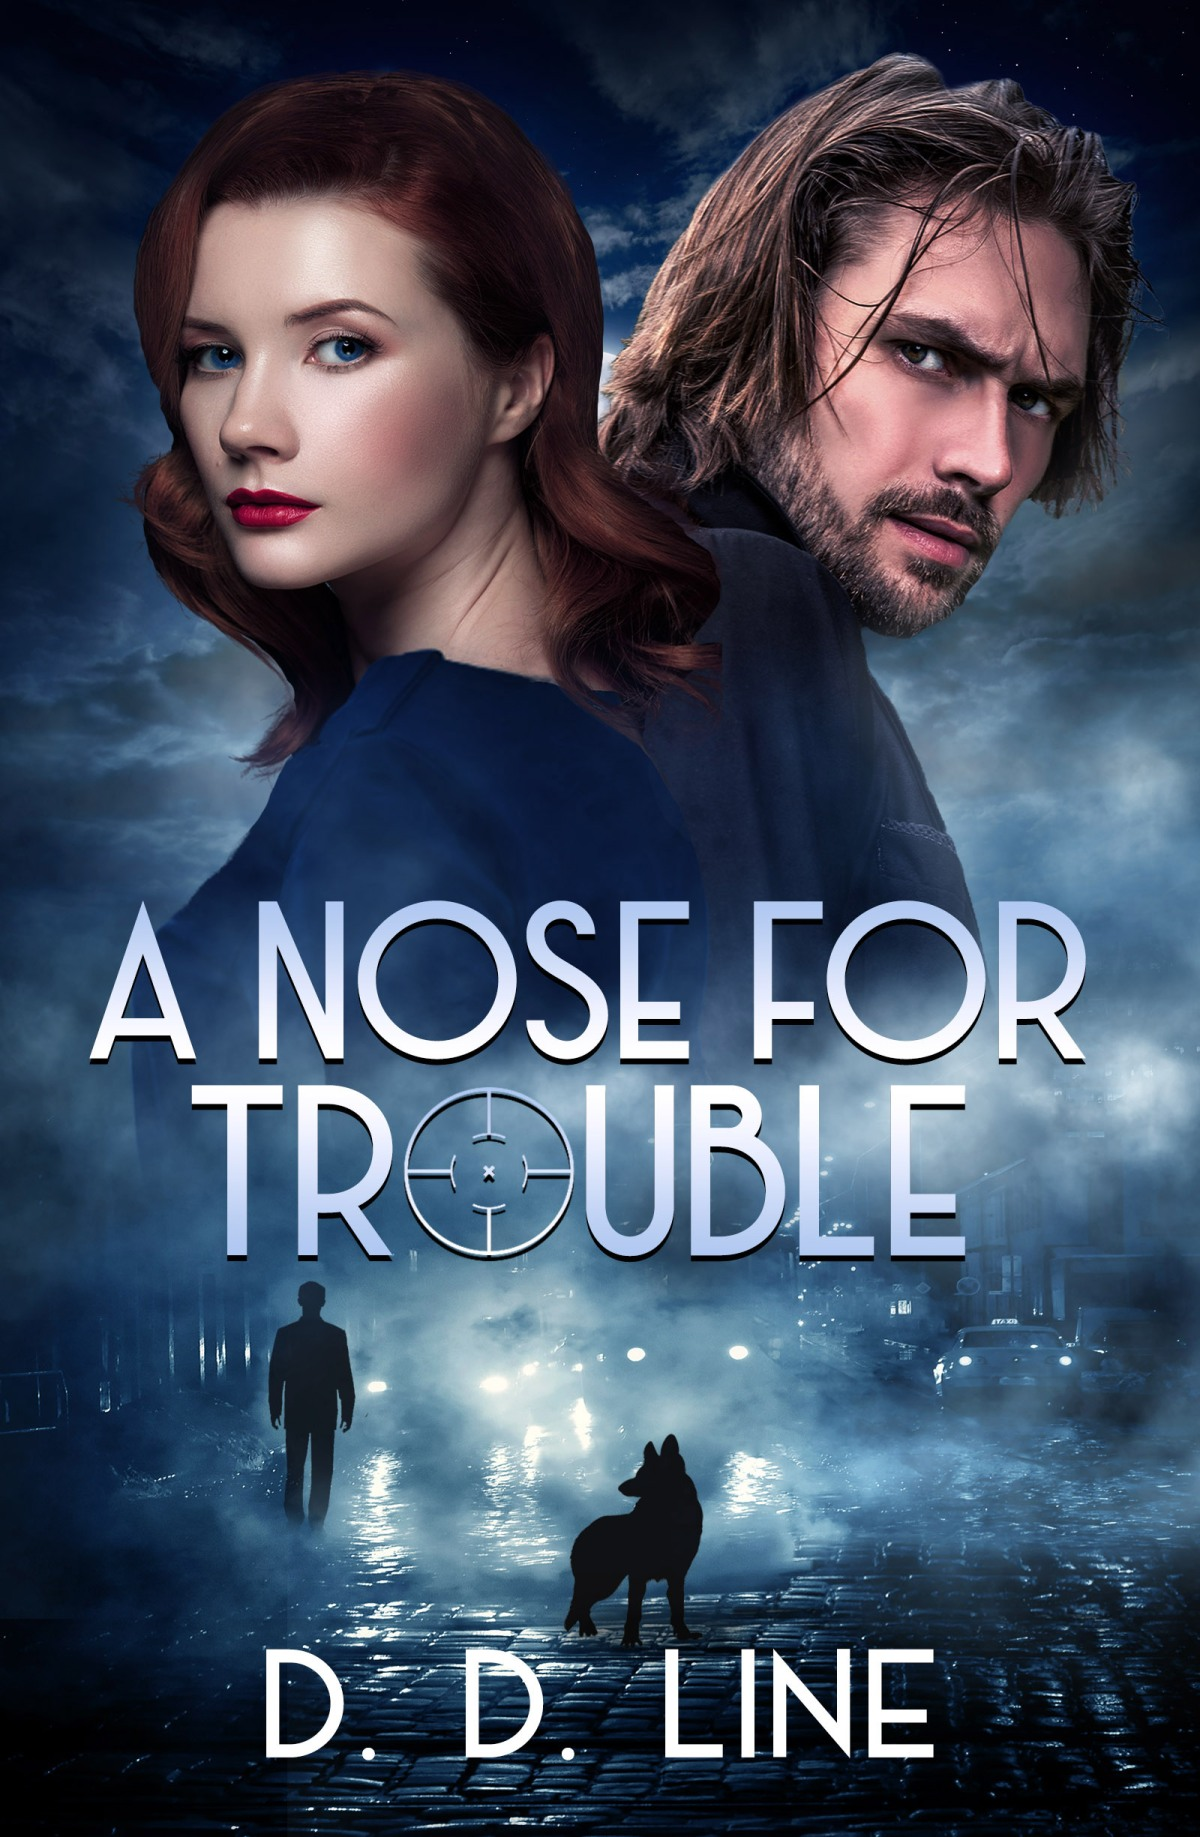 Meet D. D. Line, Author of A Nose for Trouble.